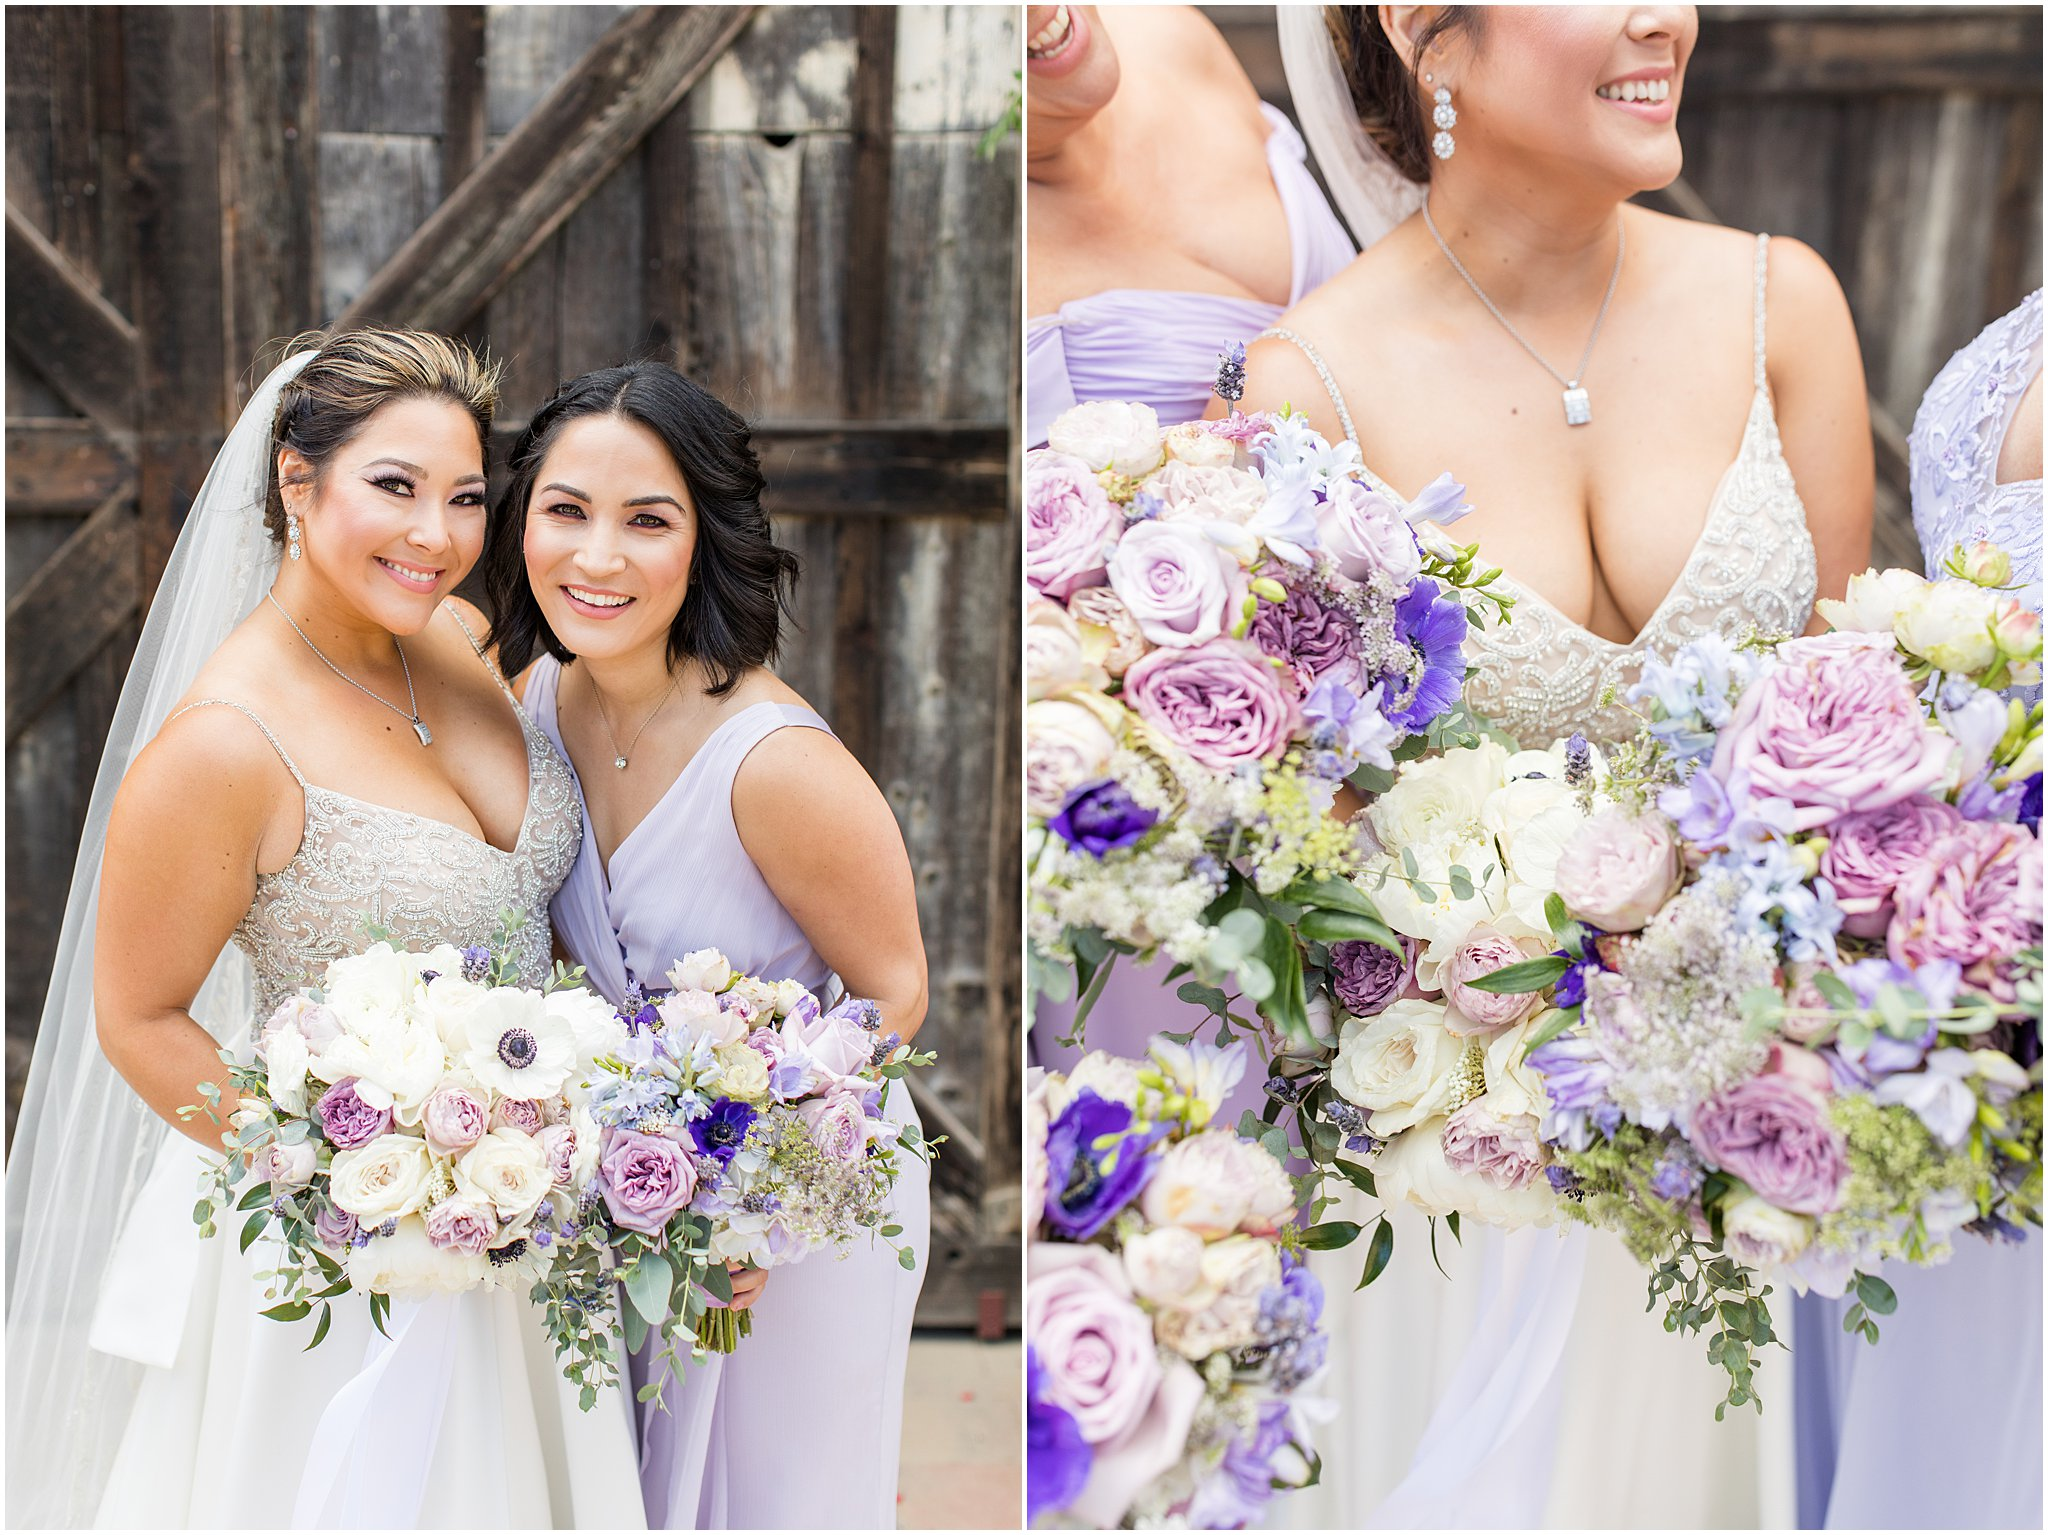 2019 wedding san juan bautista hacienda de leal vineyards bay area wedding photographer_0029.jpg